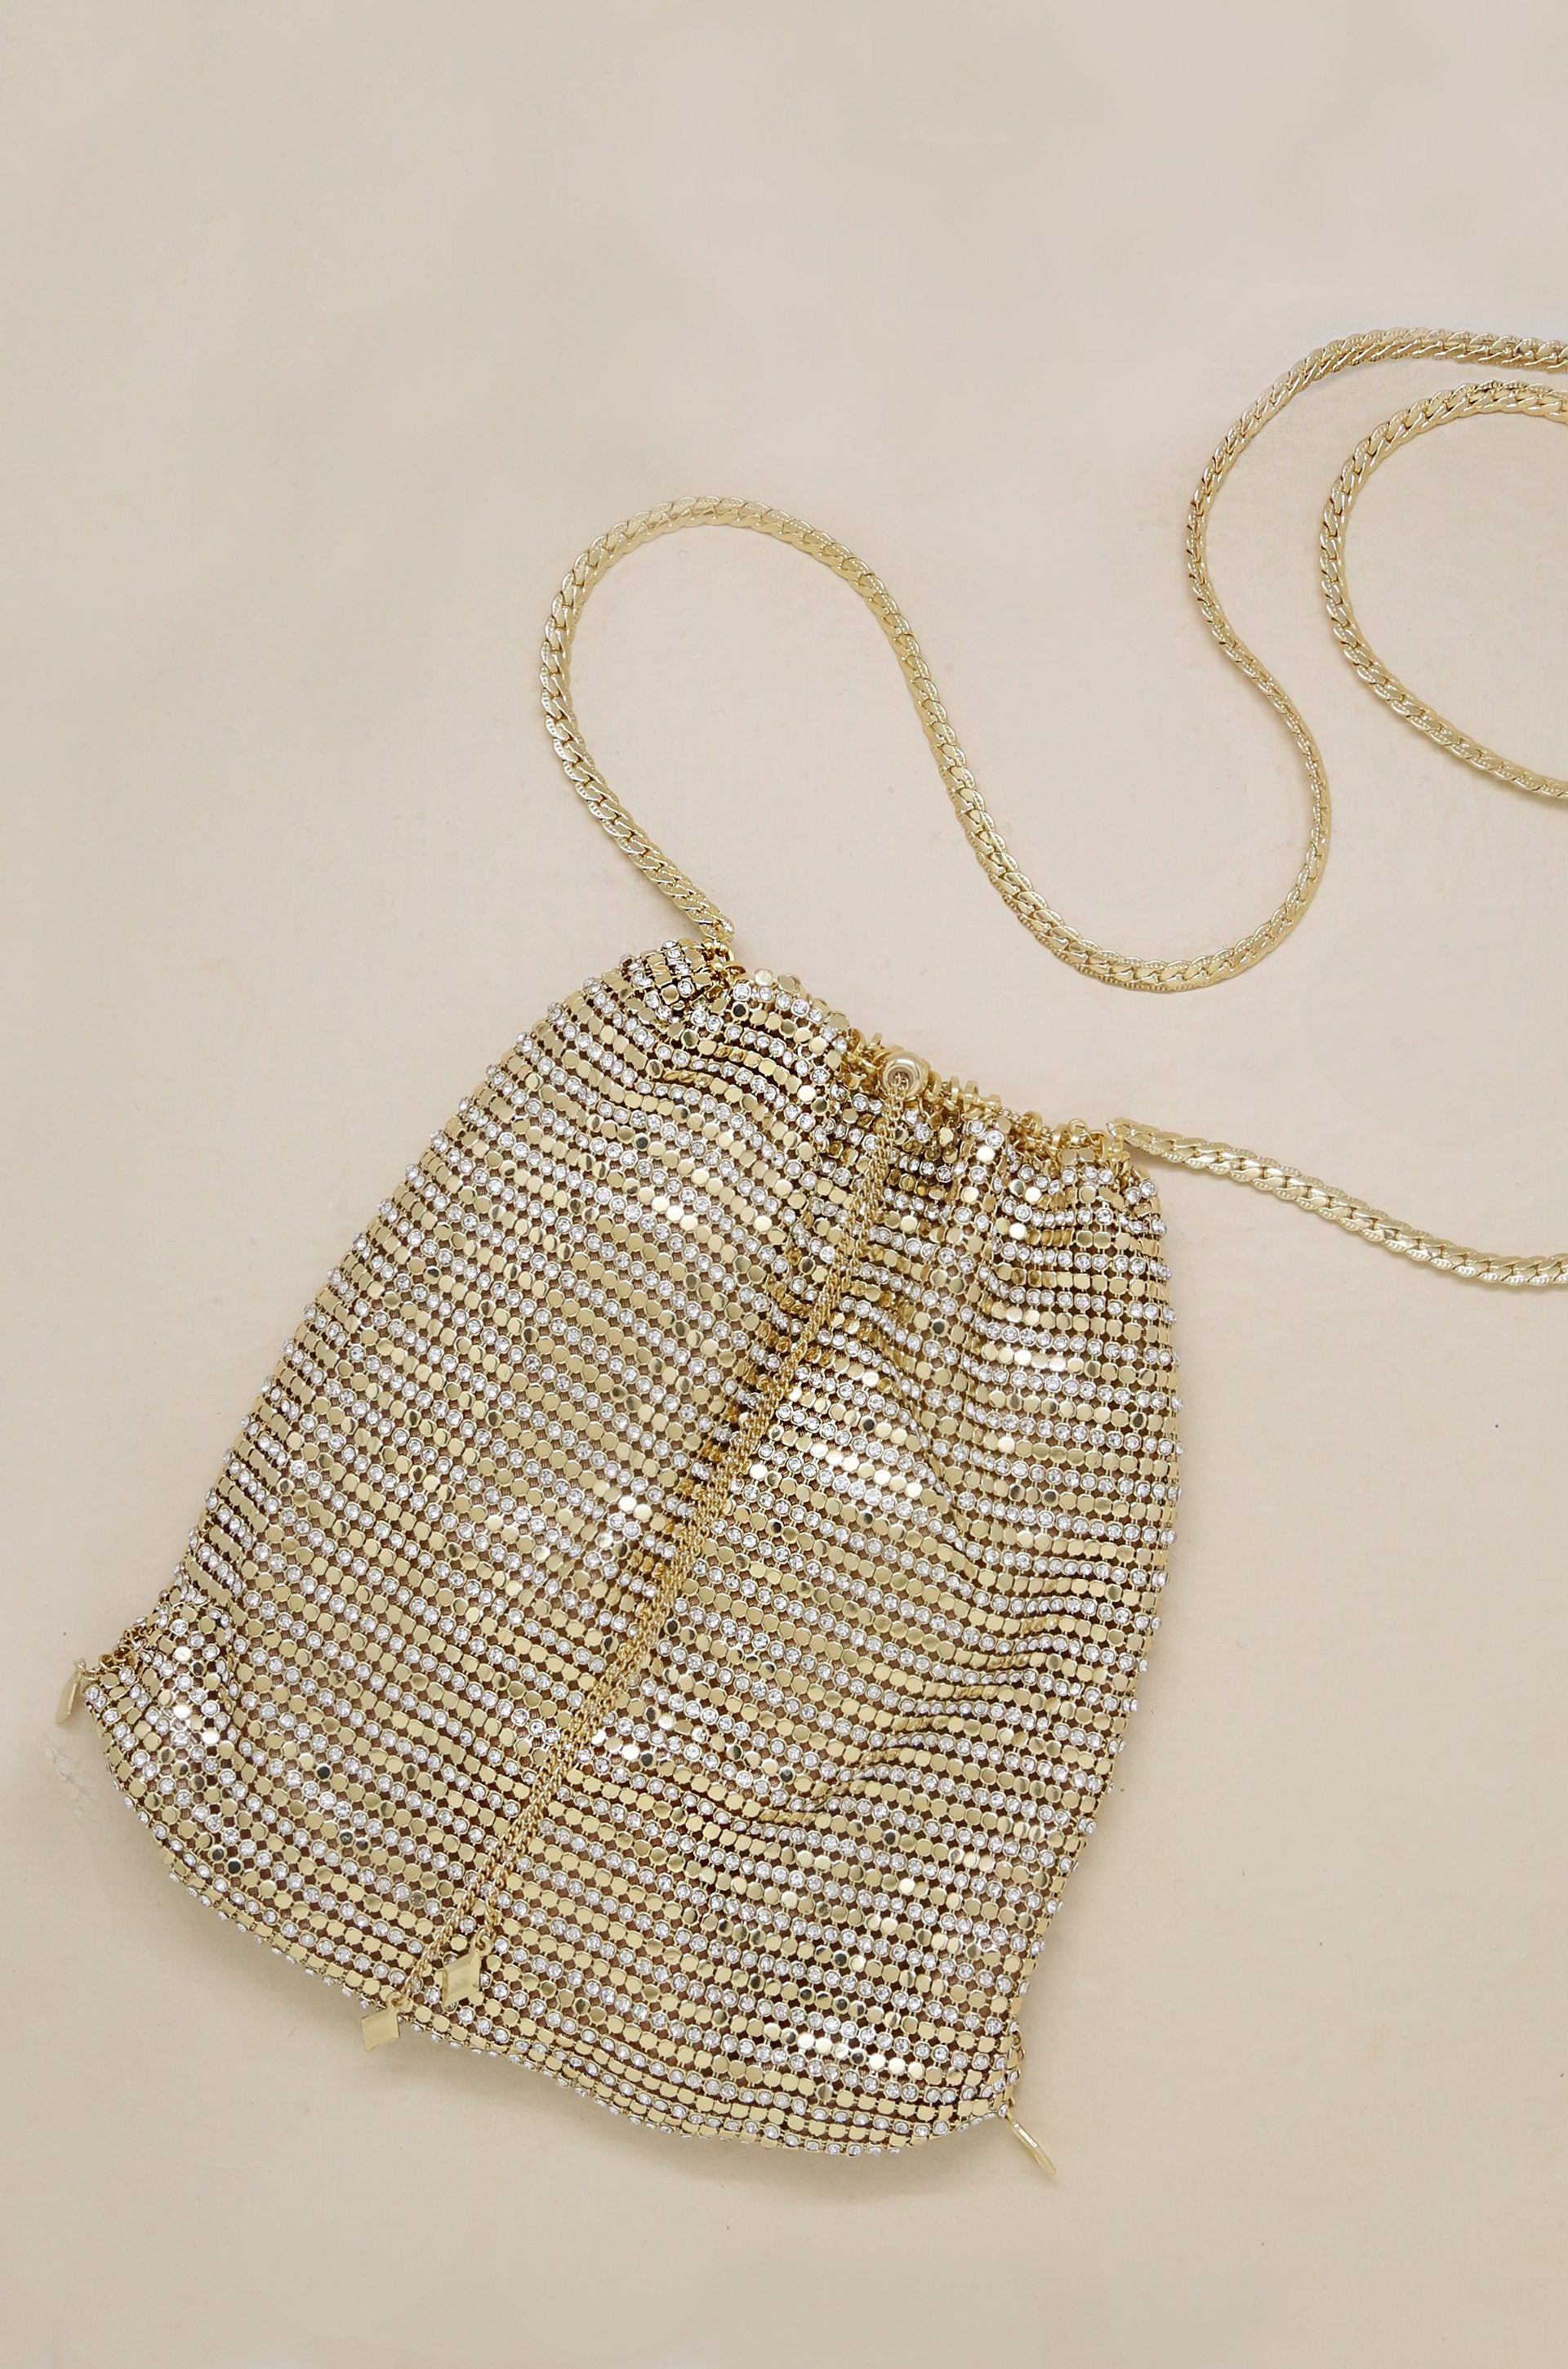 Gold Shimmer Pouch with Gold Shoulder Chain - Vanessa Stylez Boutique